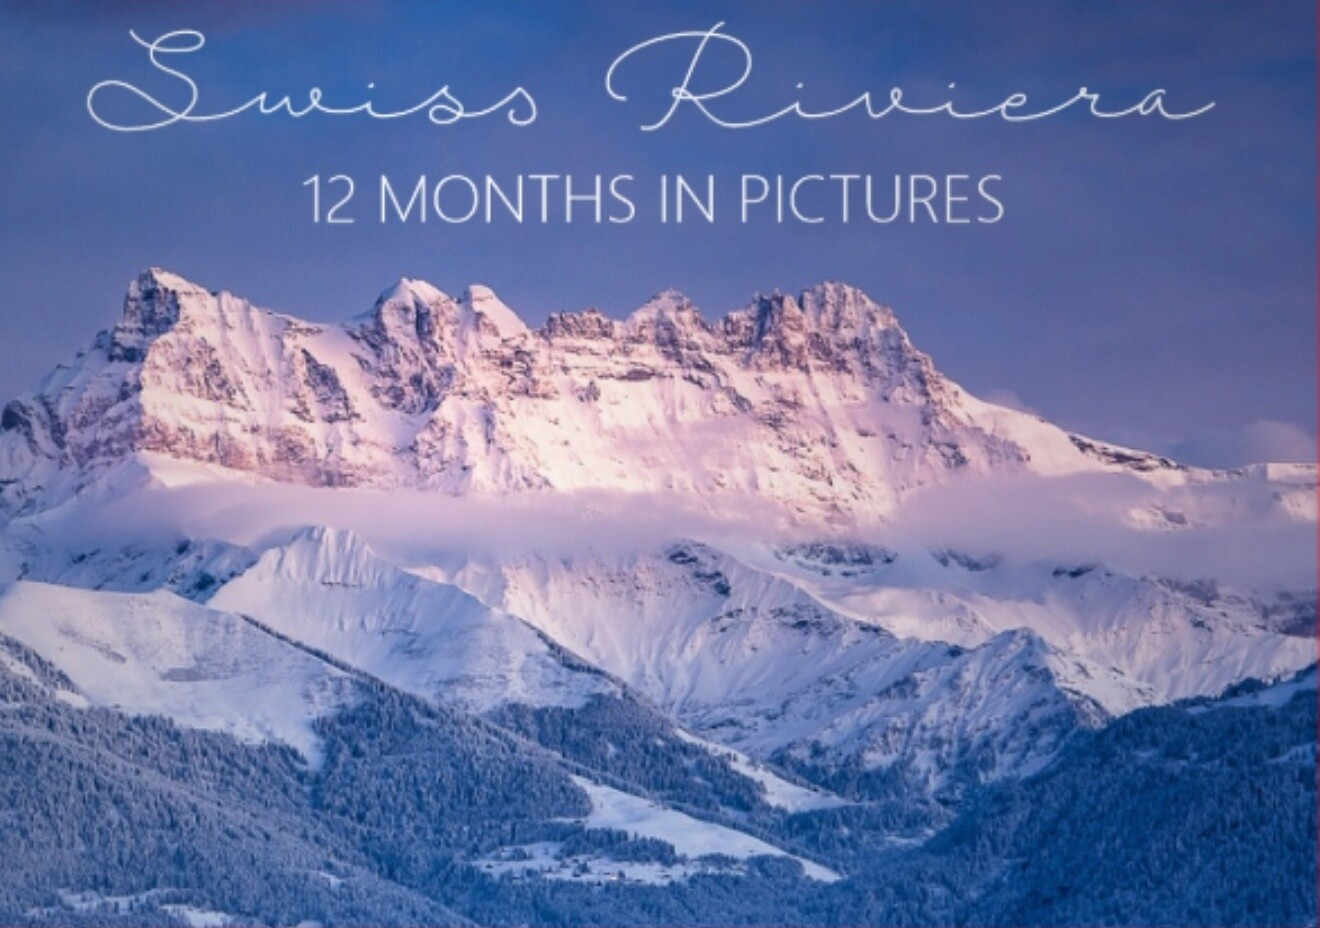 BOOK: Swiss Riviera - 12 months in pictures